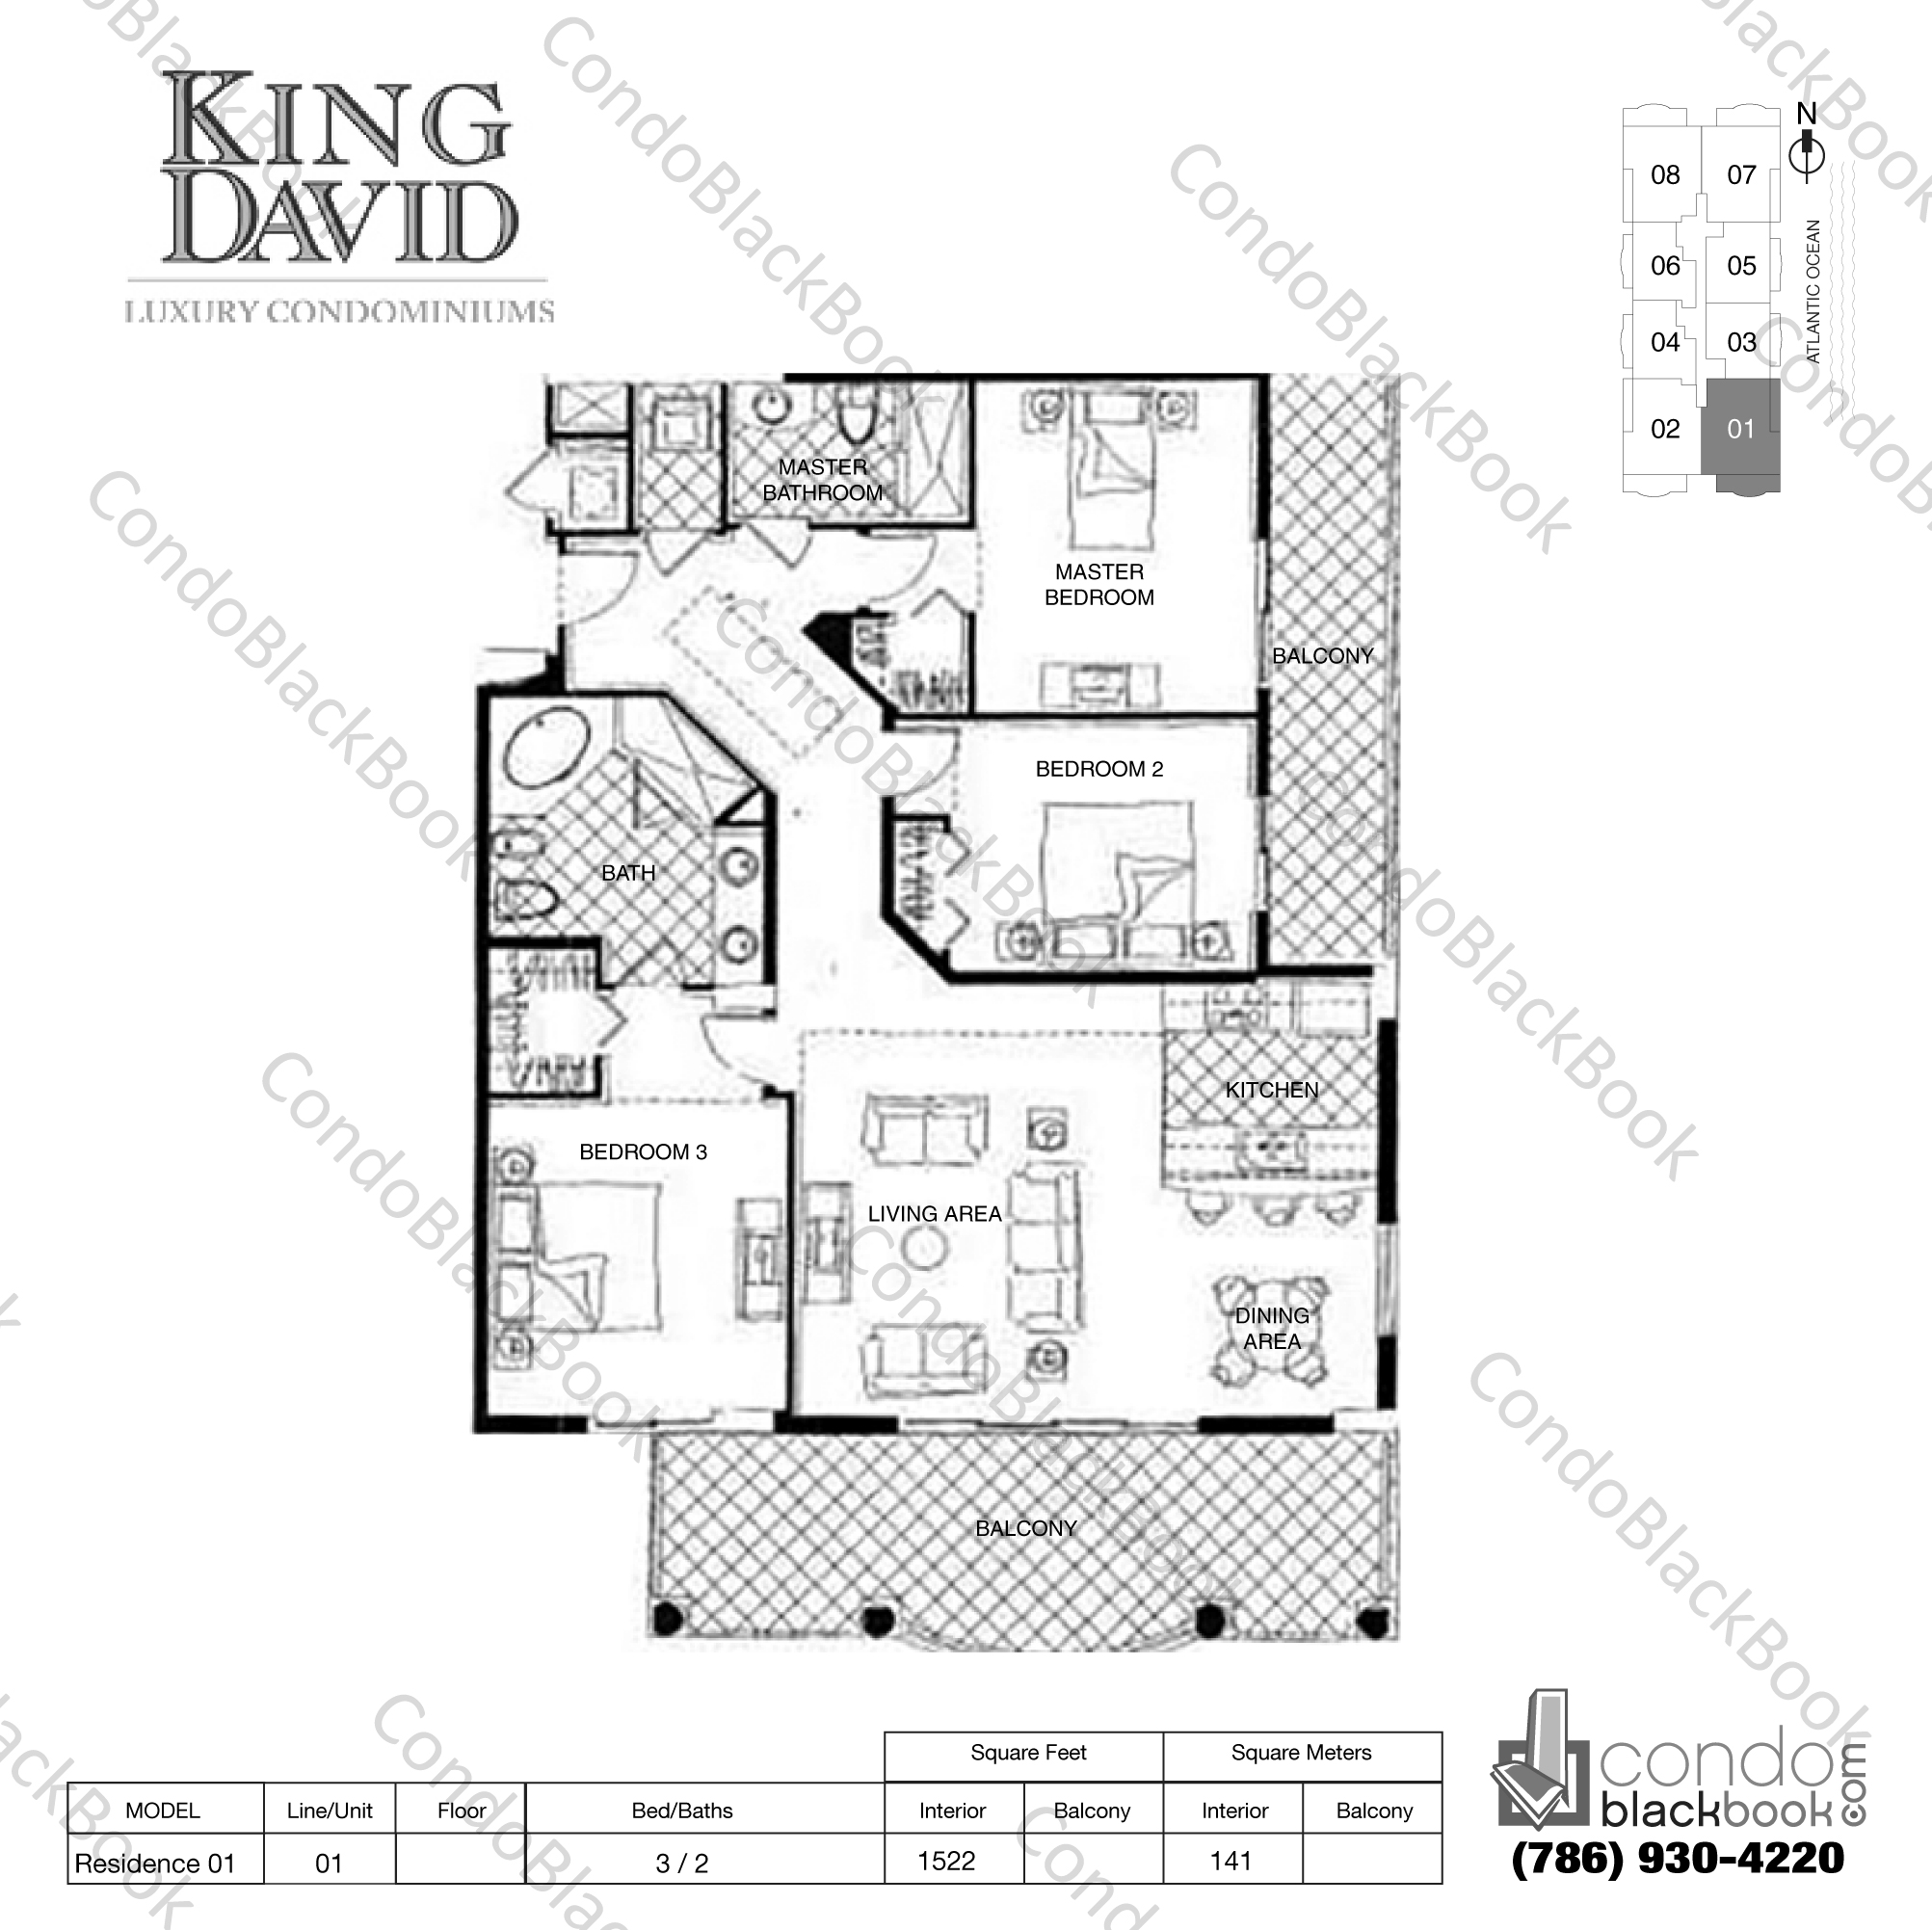 Floor plan for King David Sunny Isles Beach, model Residence 01, line 01, 3 / 2 bedrooms, 1522 sq ft